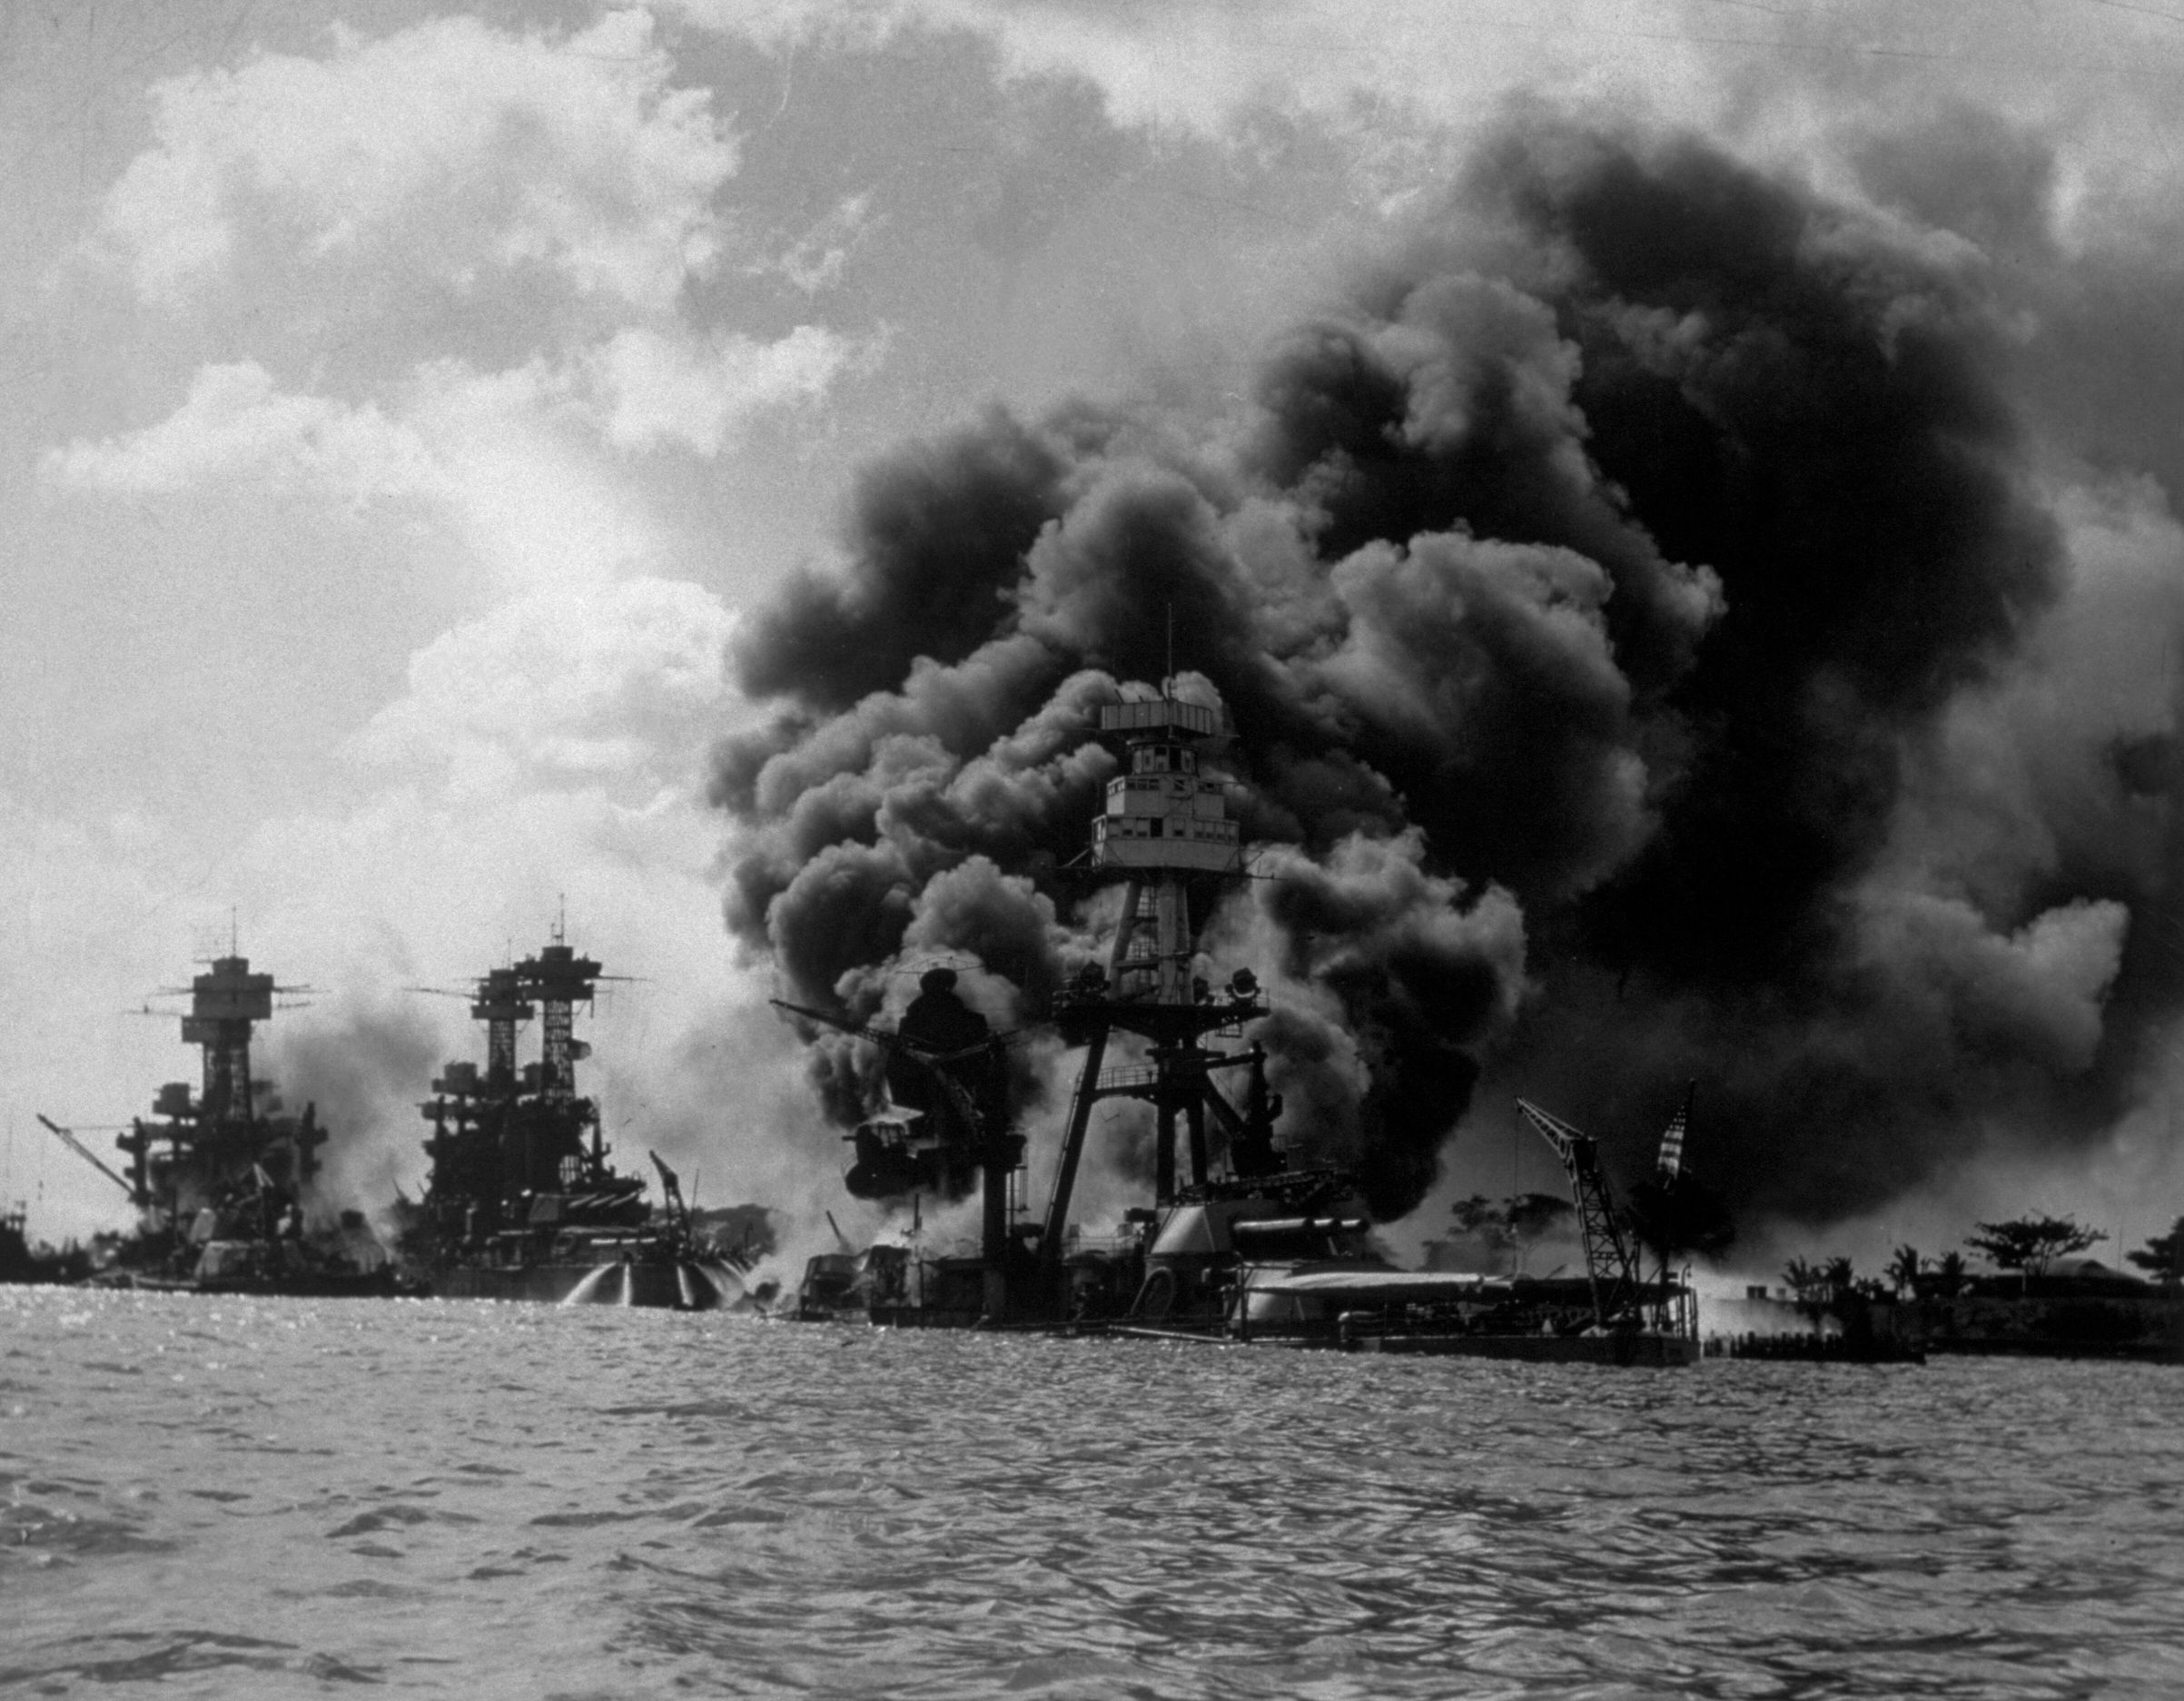 The USS Arizona burning in Pearl Harbor following the Japanese attack. To the left of her are USS Tennessee and the sunken USS West Virginia. (Photo by Hulton Archive/Getty Images)